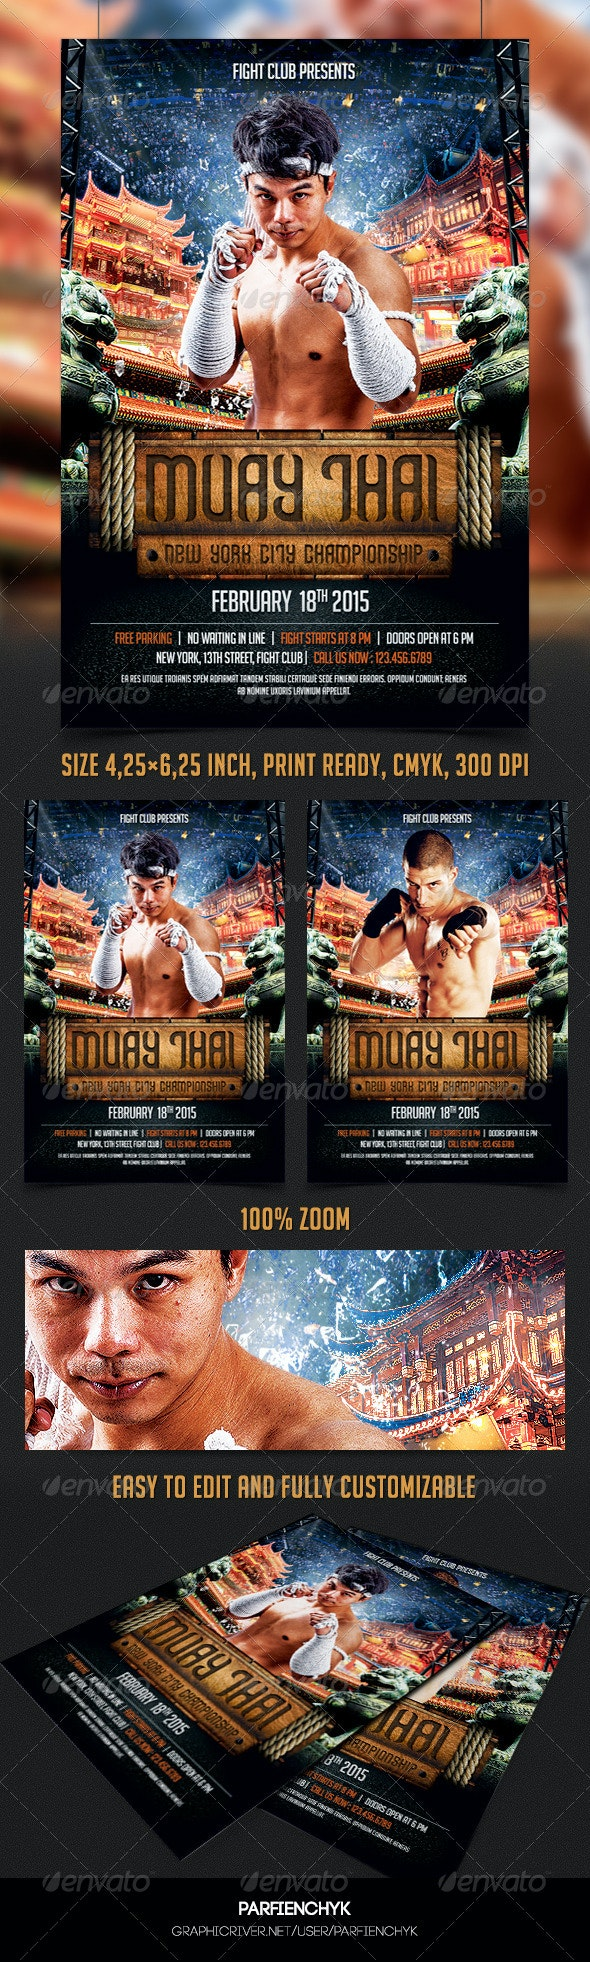 Muay Thai Flyer Template - Sports Events